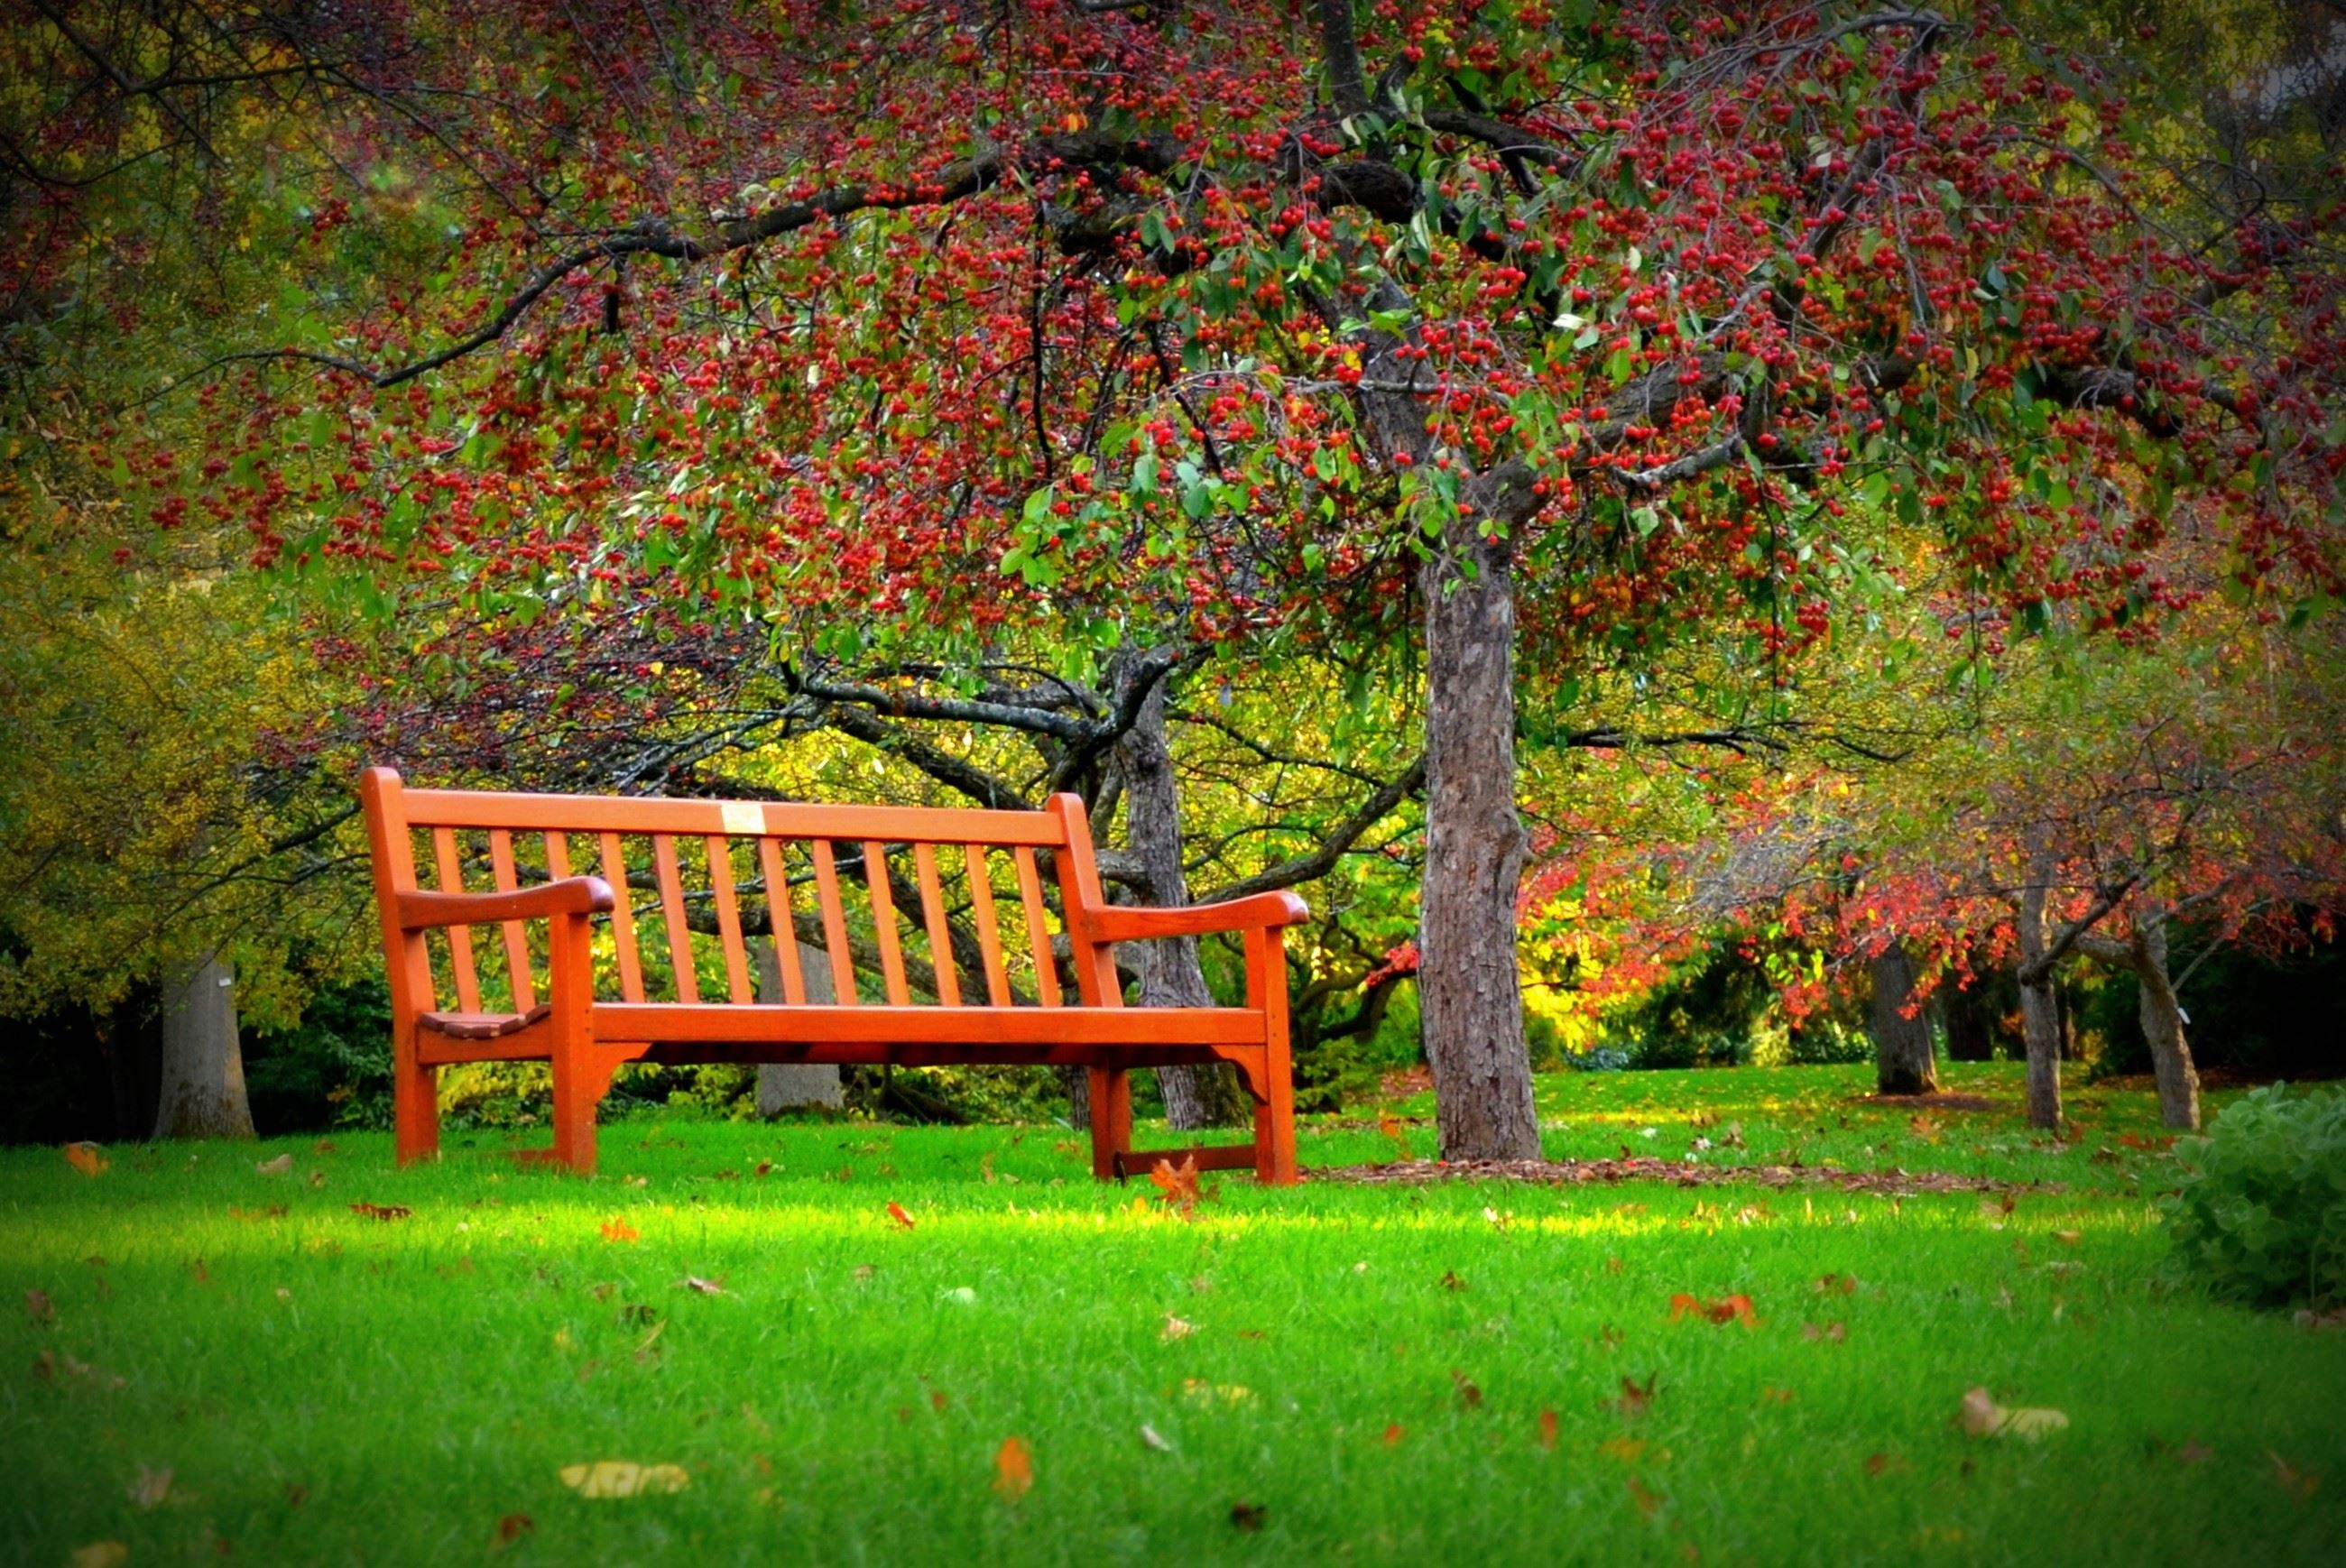 Image of a bench in a park under a tree